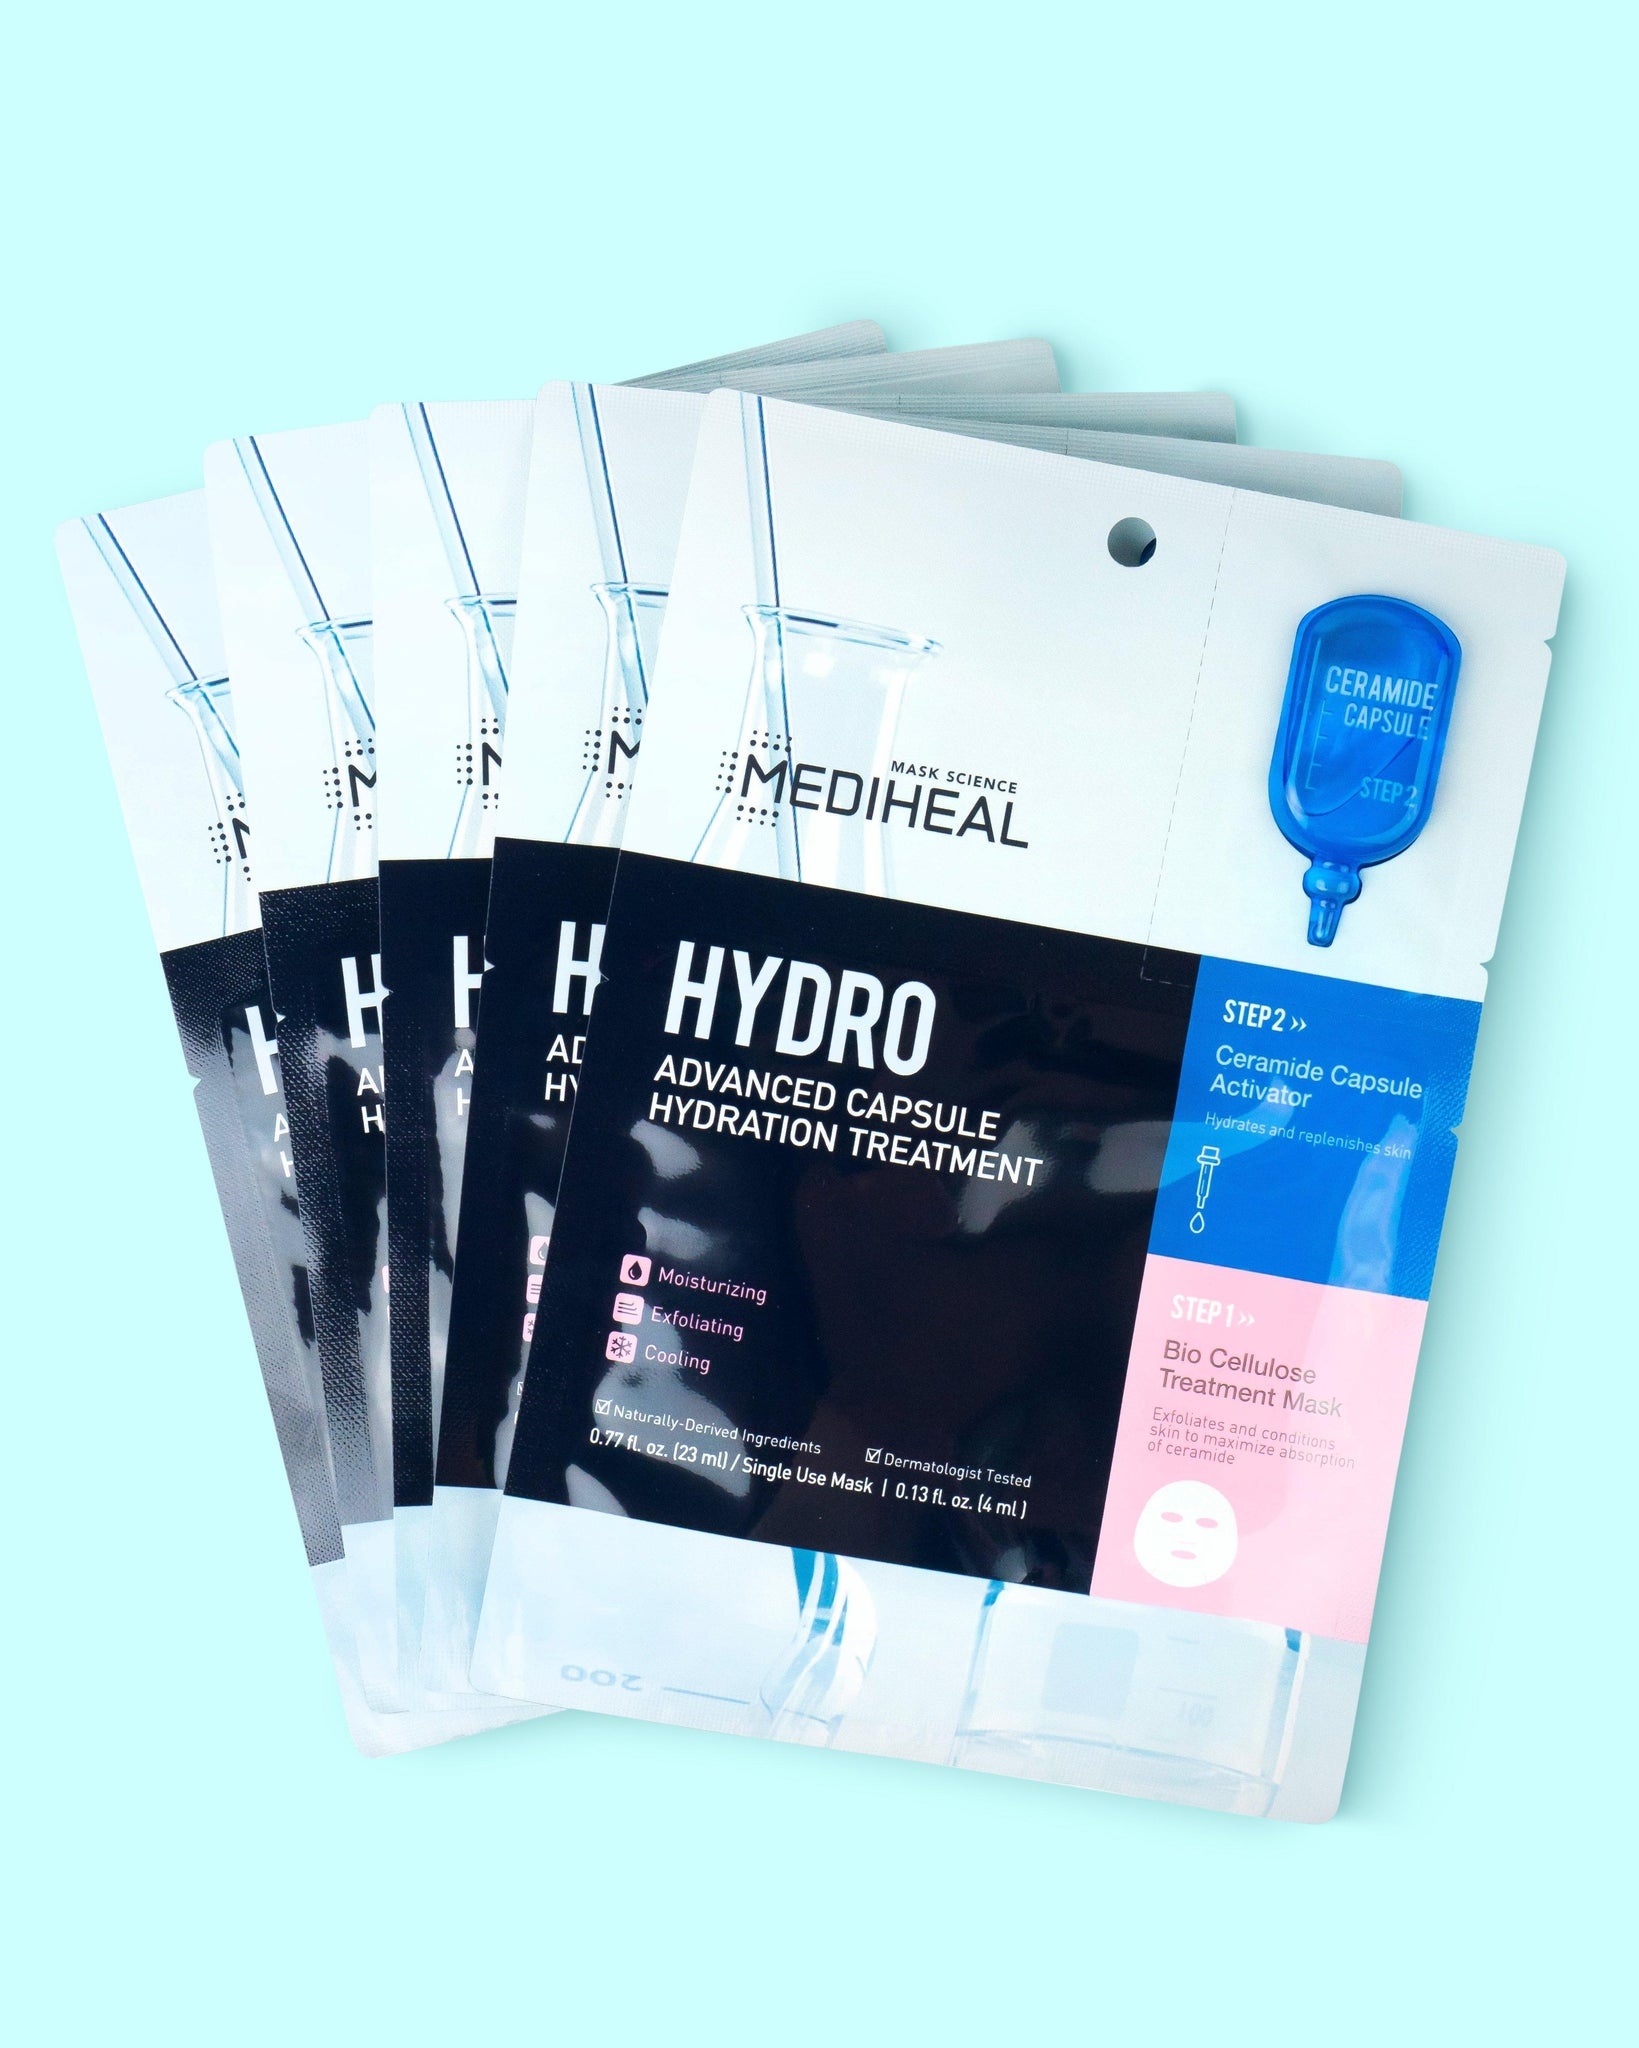 Hydro Advanced Capsule Hydration Treatment Sheet Mask (5 pack)